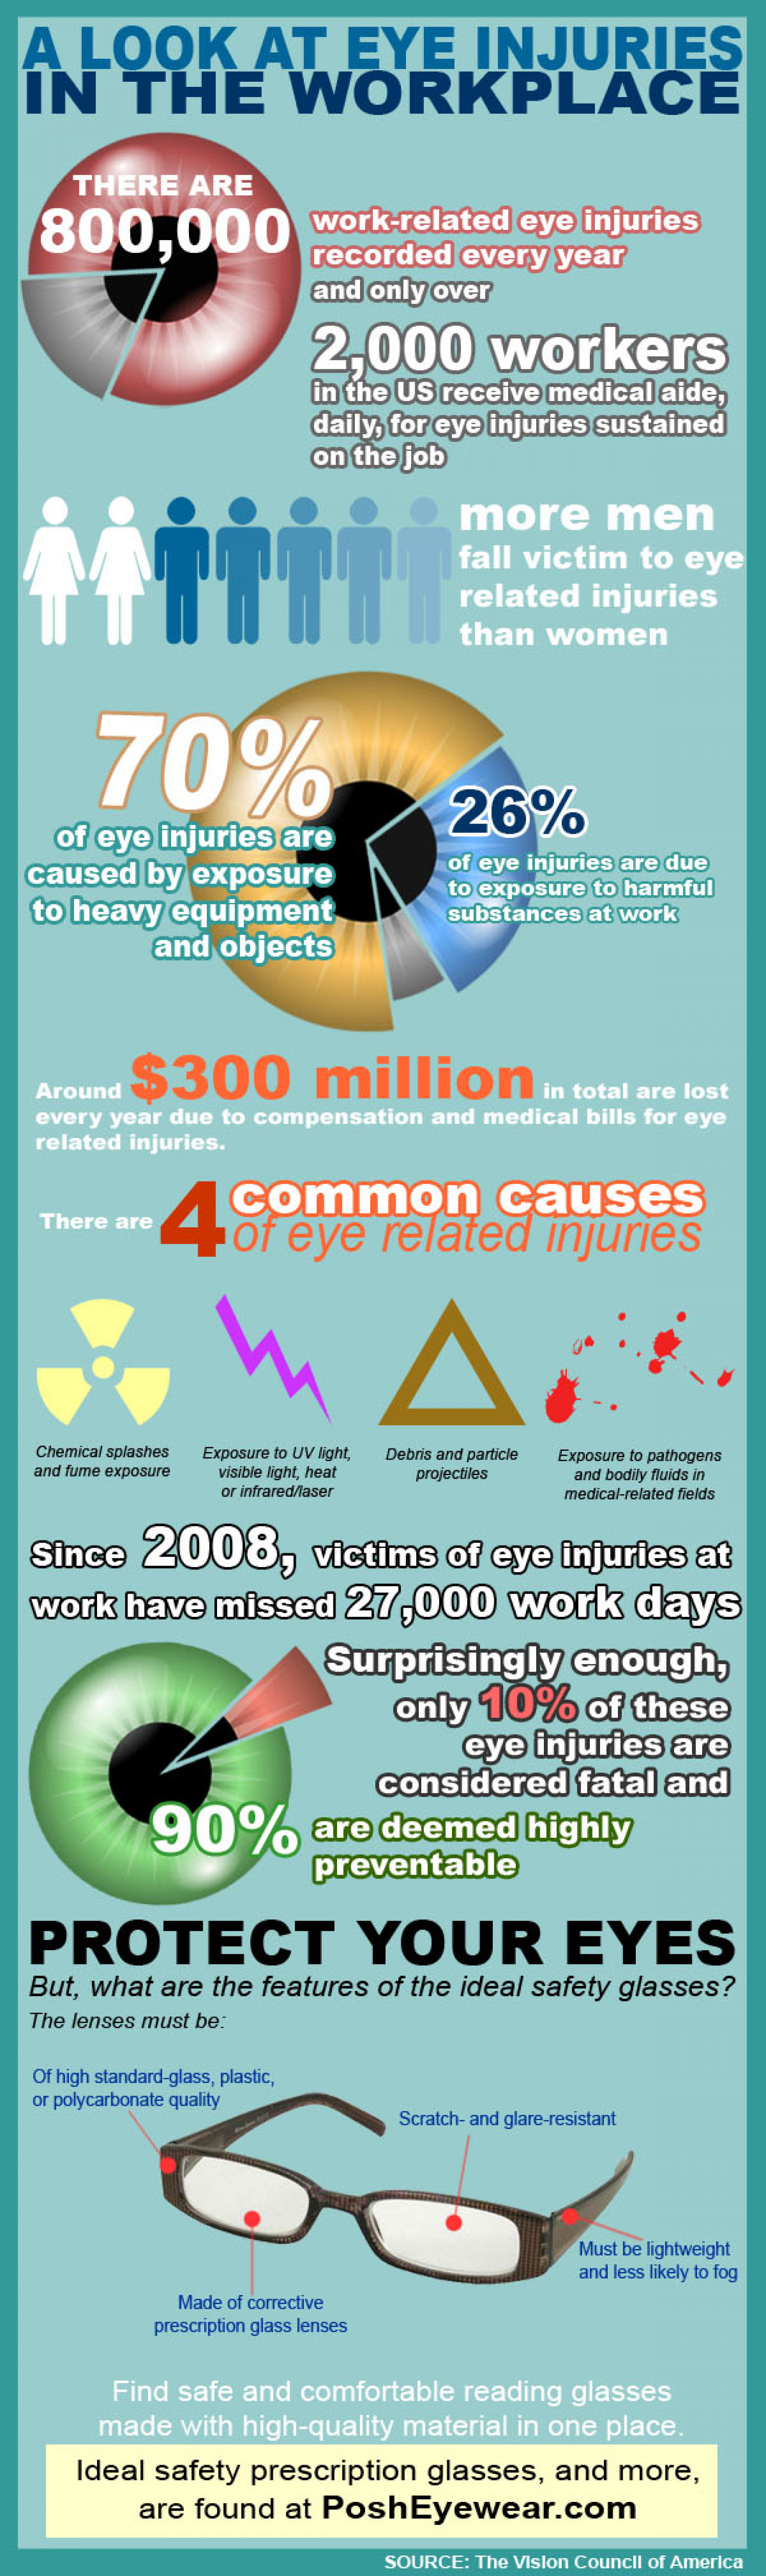 A Look at Eye Injuries in the Workplace Infographic